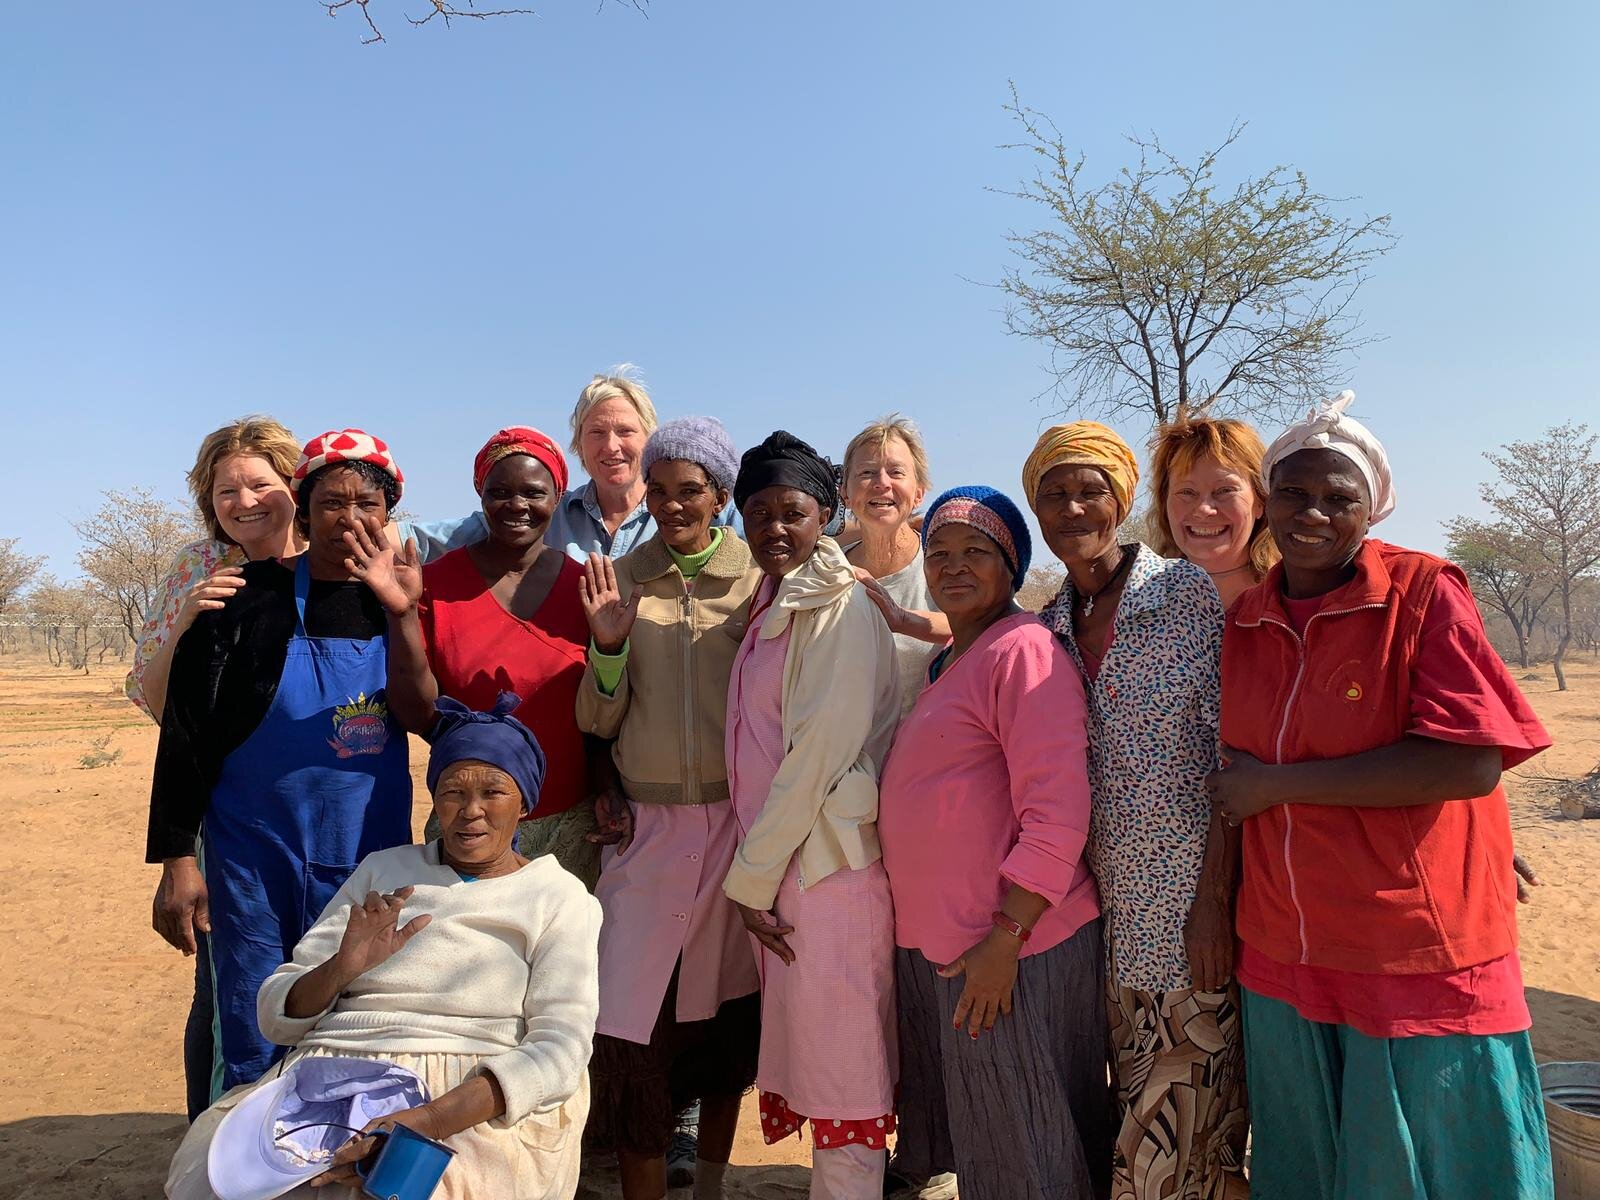 Chief Ita with her wonderful group of soup kitchen volunteers, CSNS Board members Diane, Helge, Betty and Judy in the back row. All working together in harmony on a shared vision for the orphaned and vulnerable children!